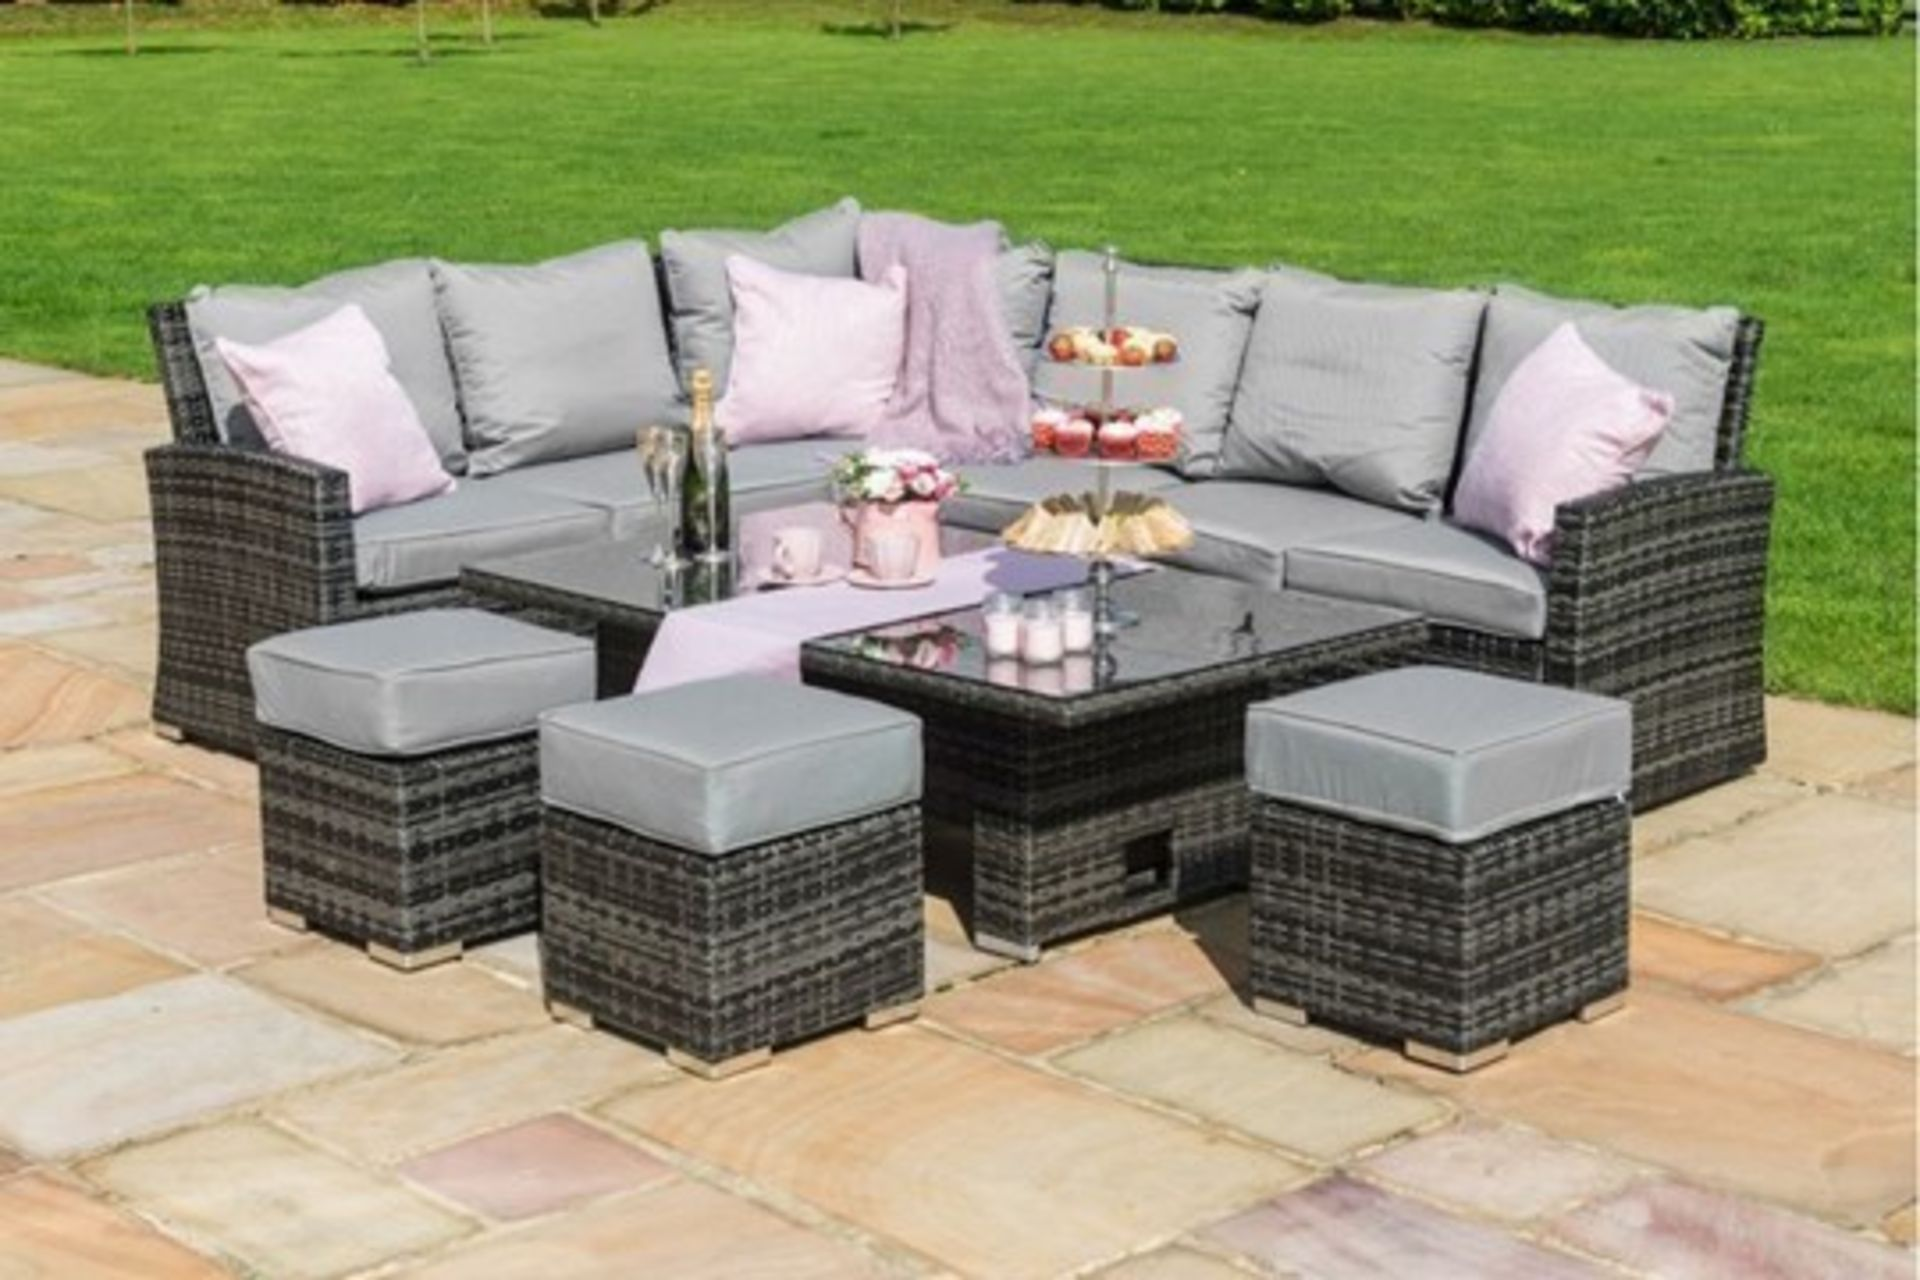 Rattan Kingston Corner Outdoor Dining Set With Rising Table (Grey) *BRAND NEW*